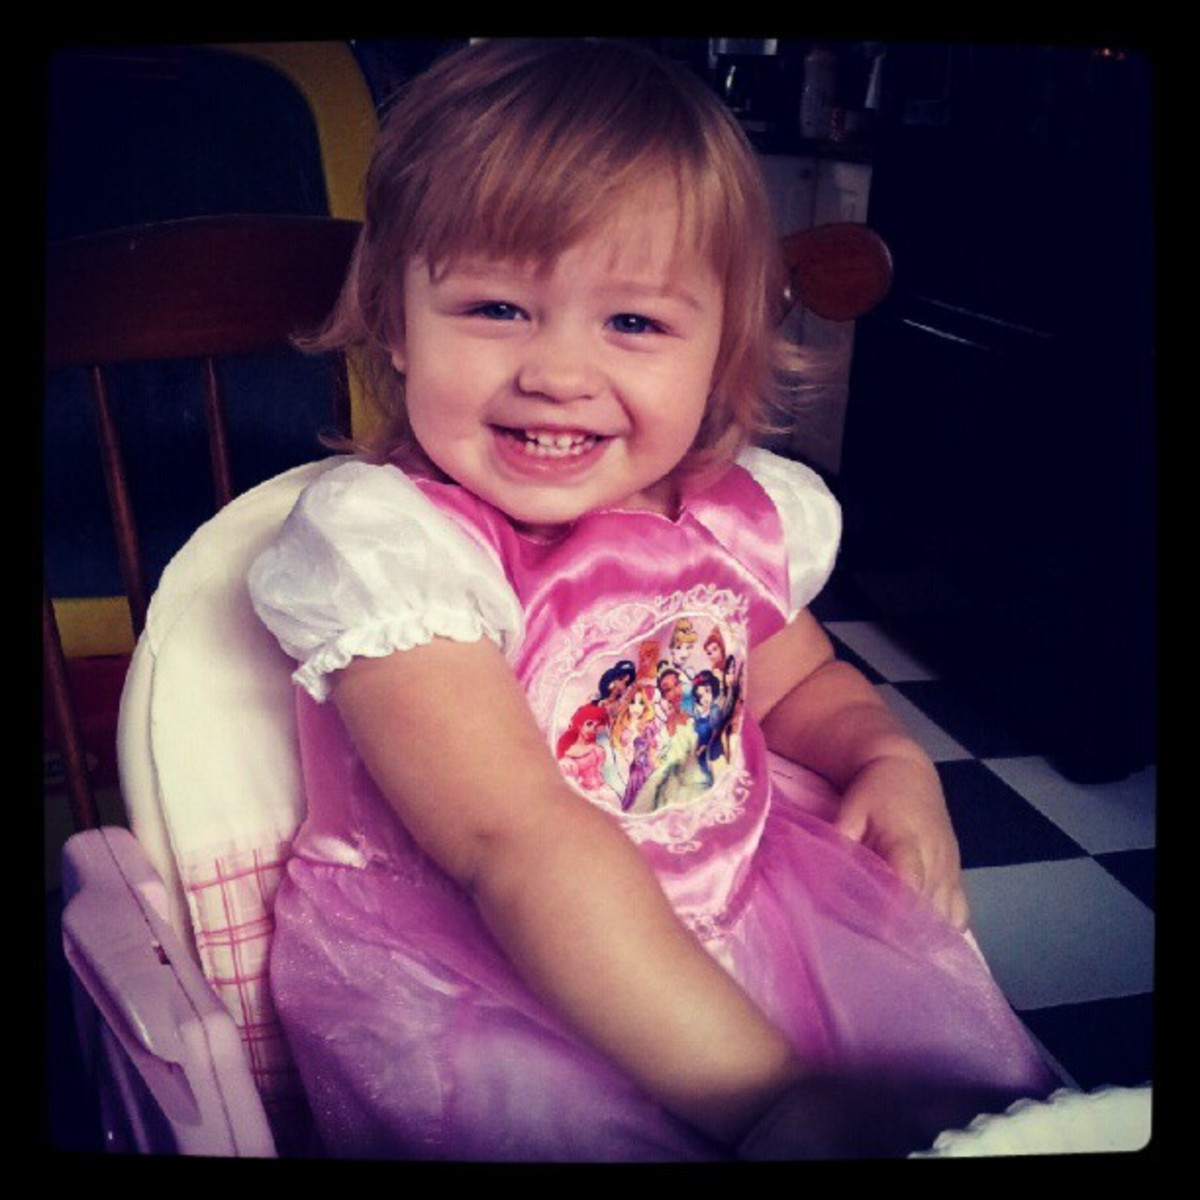 My little princess dressed like a princess, just shy of two years old.